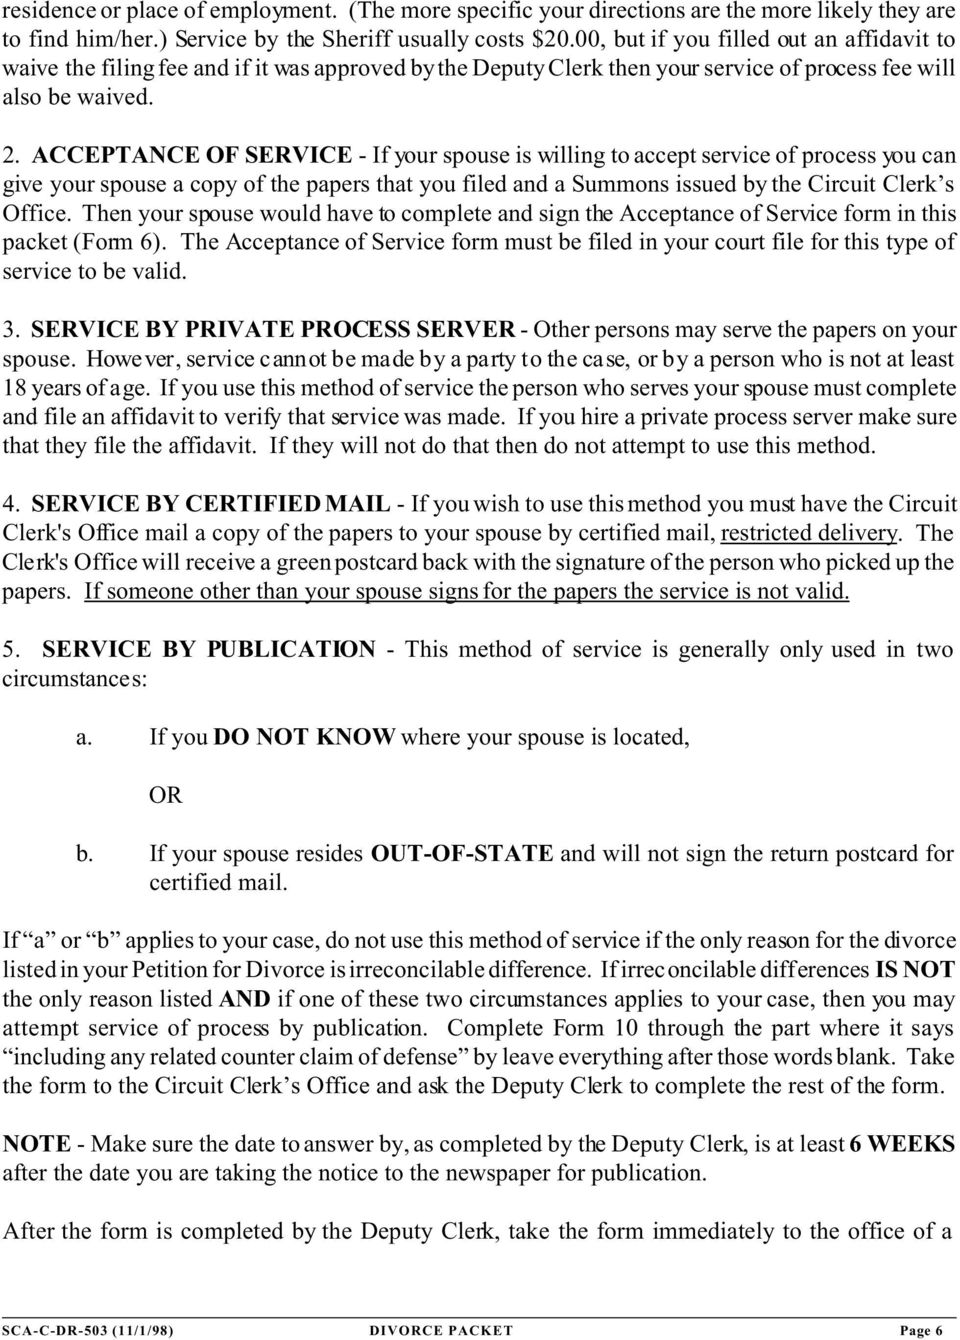 ACCEPTANCE OF SERVICE - If your spouse is willing to accept service of process you can give your spouse a copy of the papers that you filed and a Summons issued by the Circuit Clerk s Office.